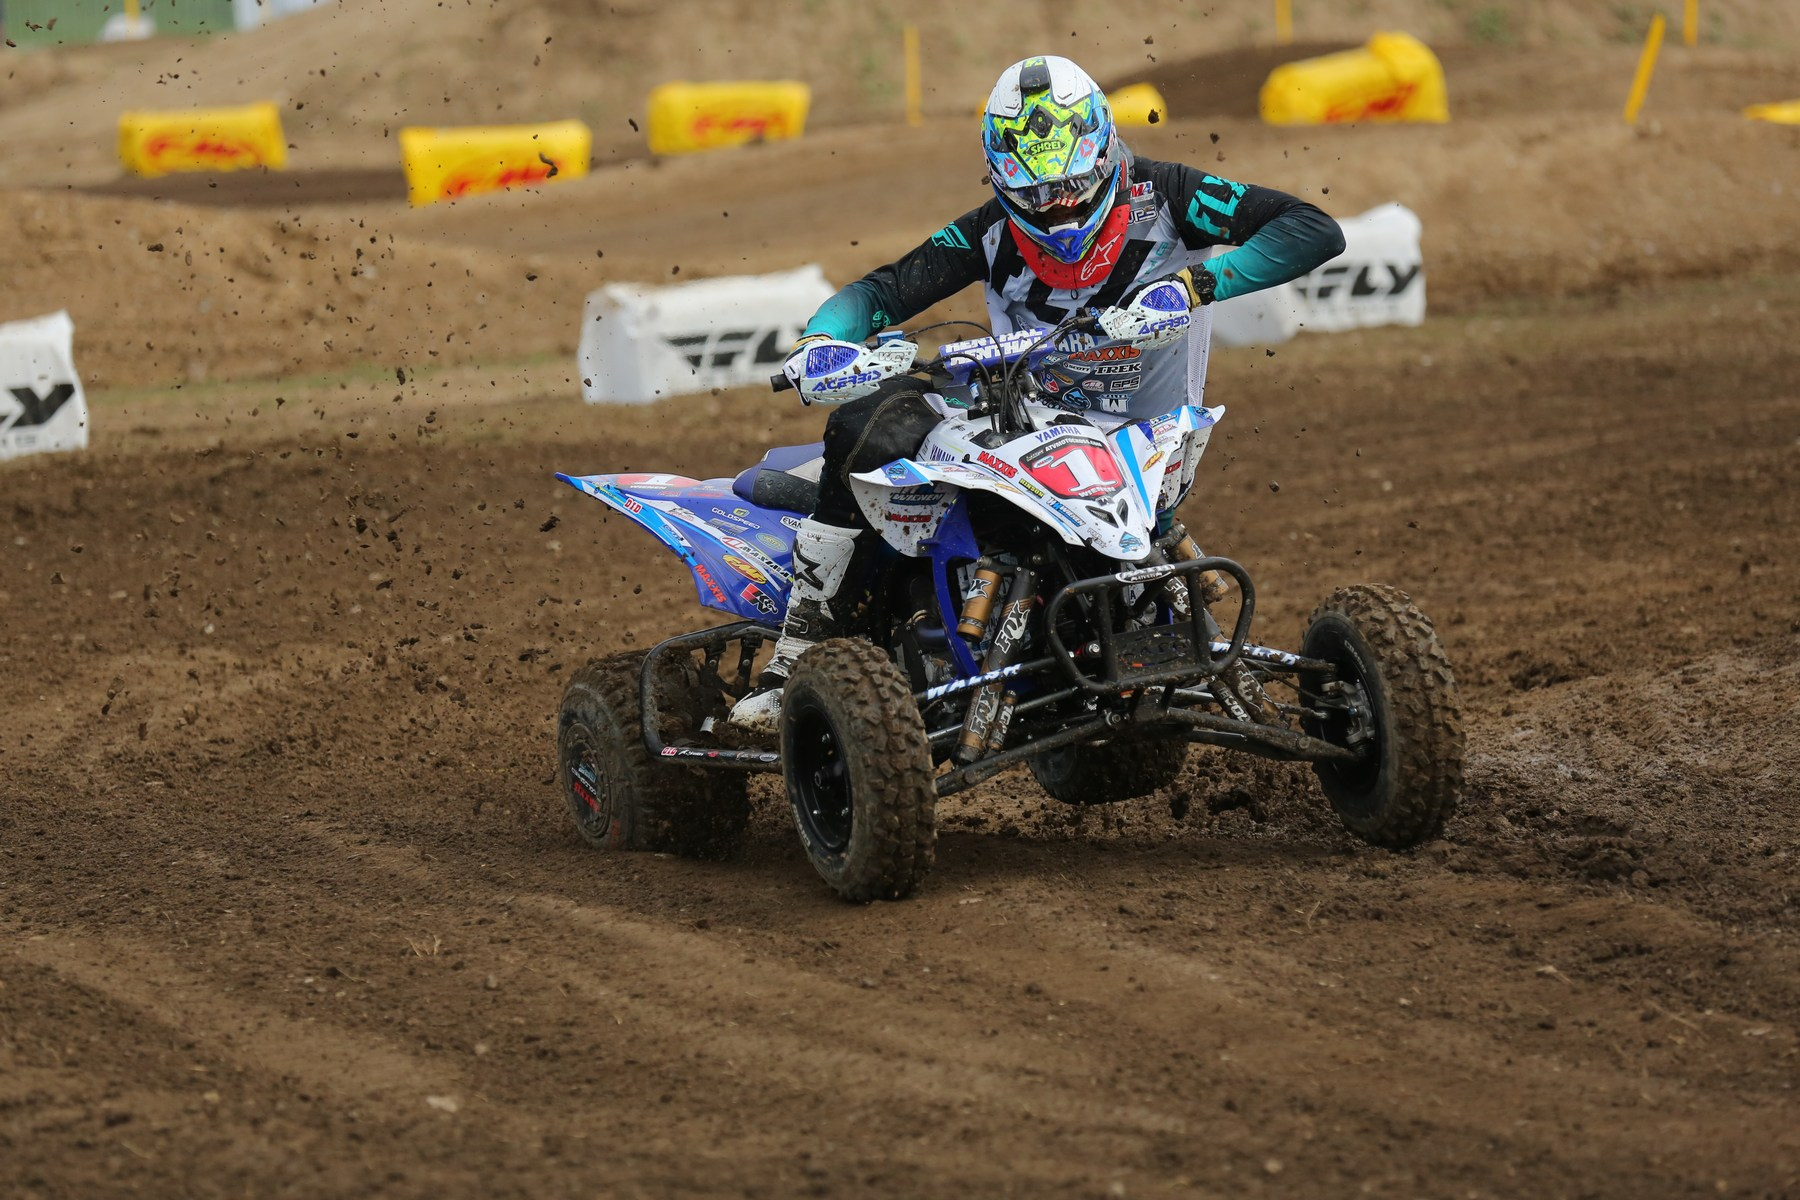 chad wienen pulls through with his 5th atv mx championship